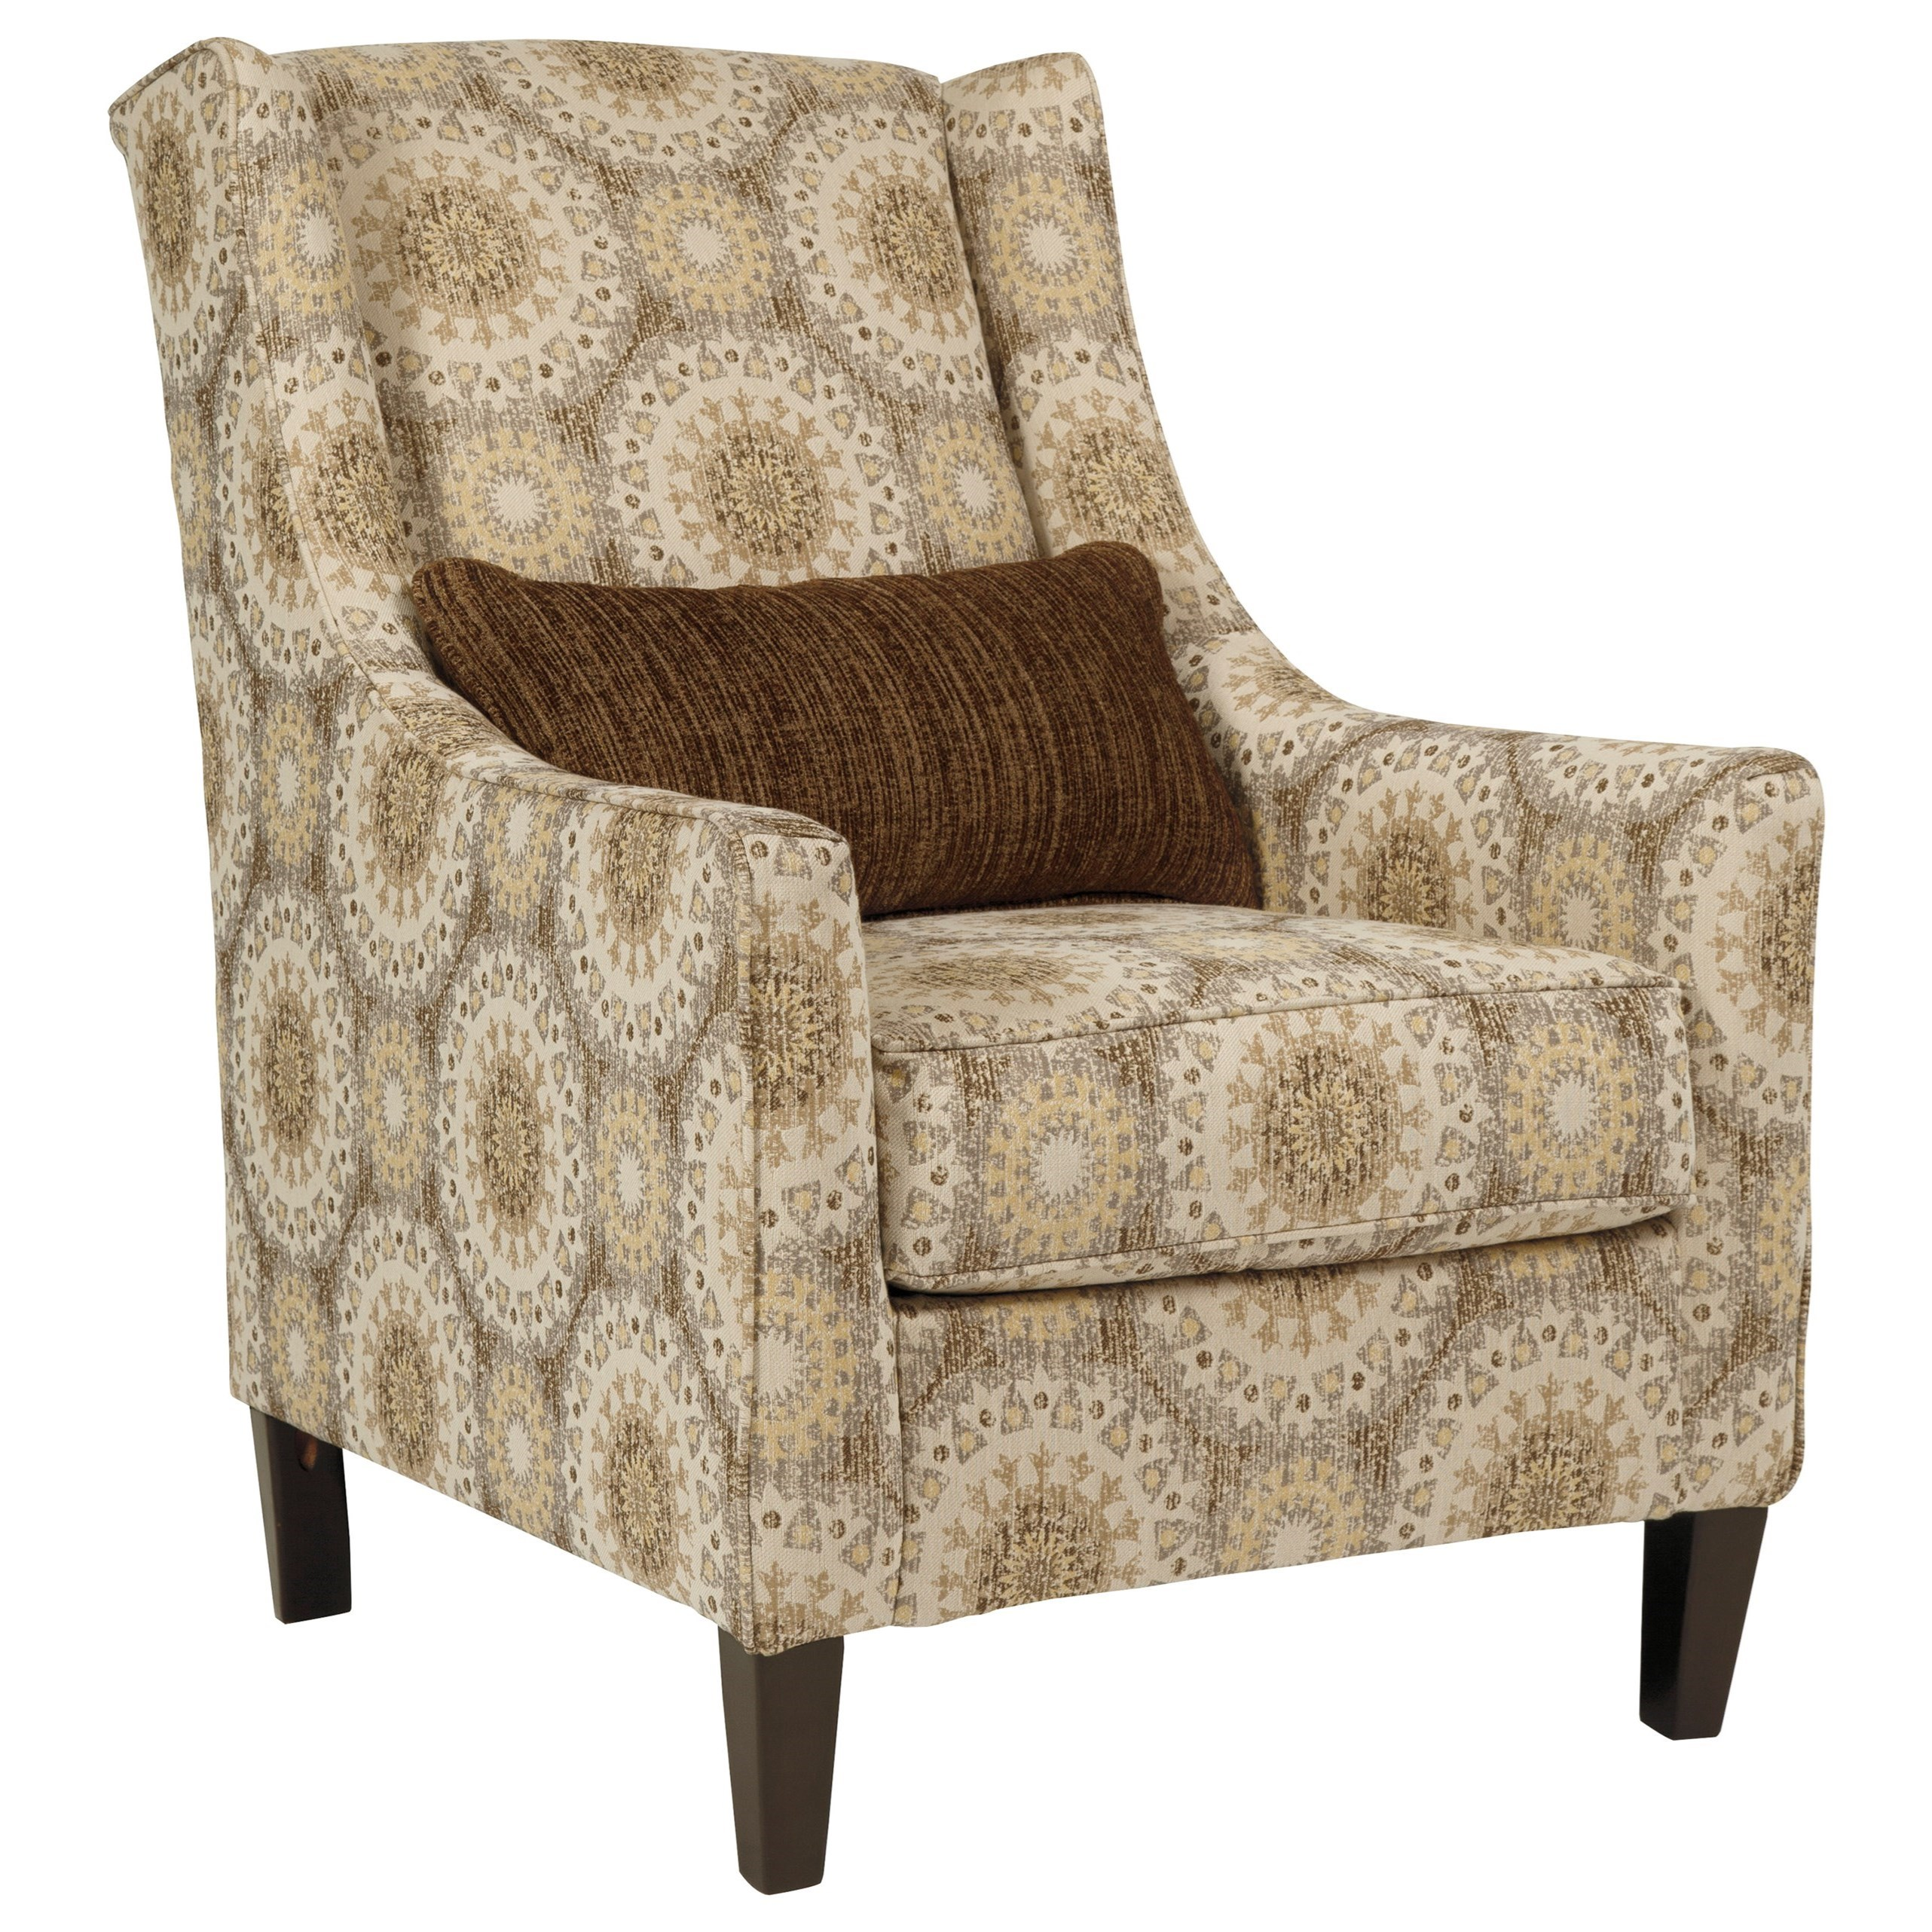 transitional accent chairs chair covers wilko benchcraft quarry hill 3870121 wing back with lumbar item number